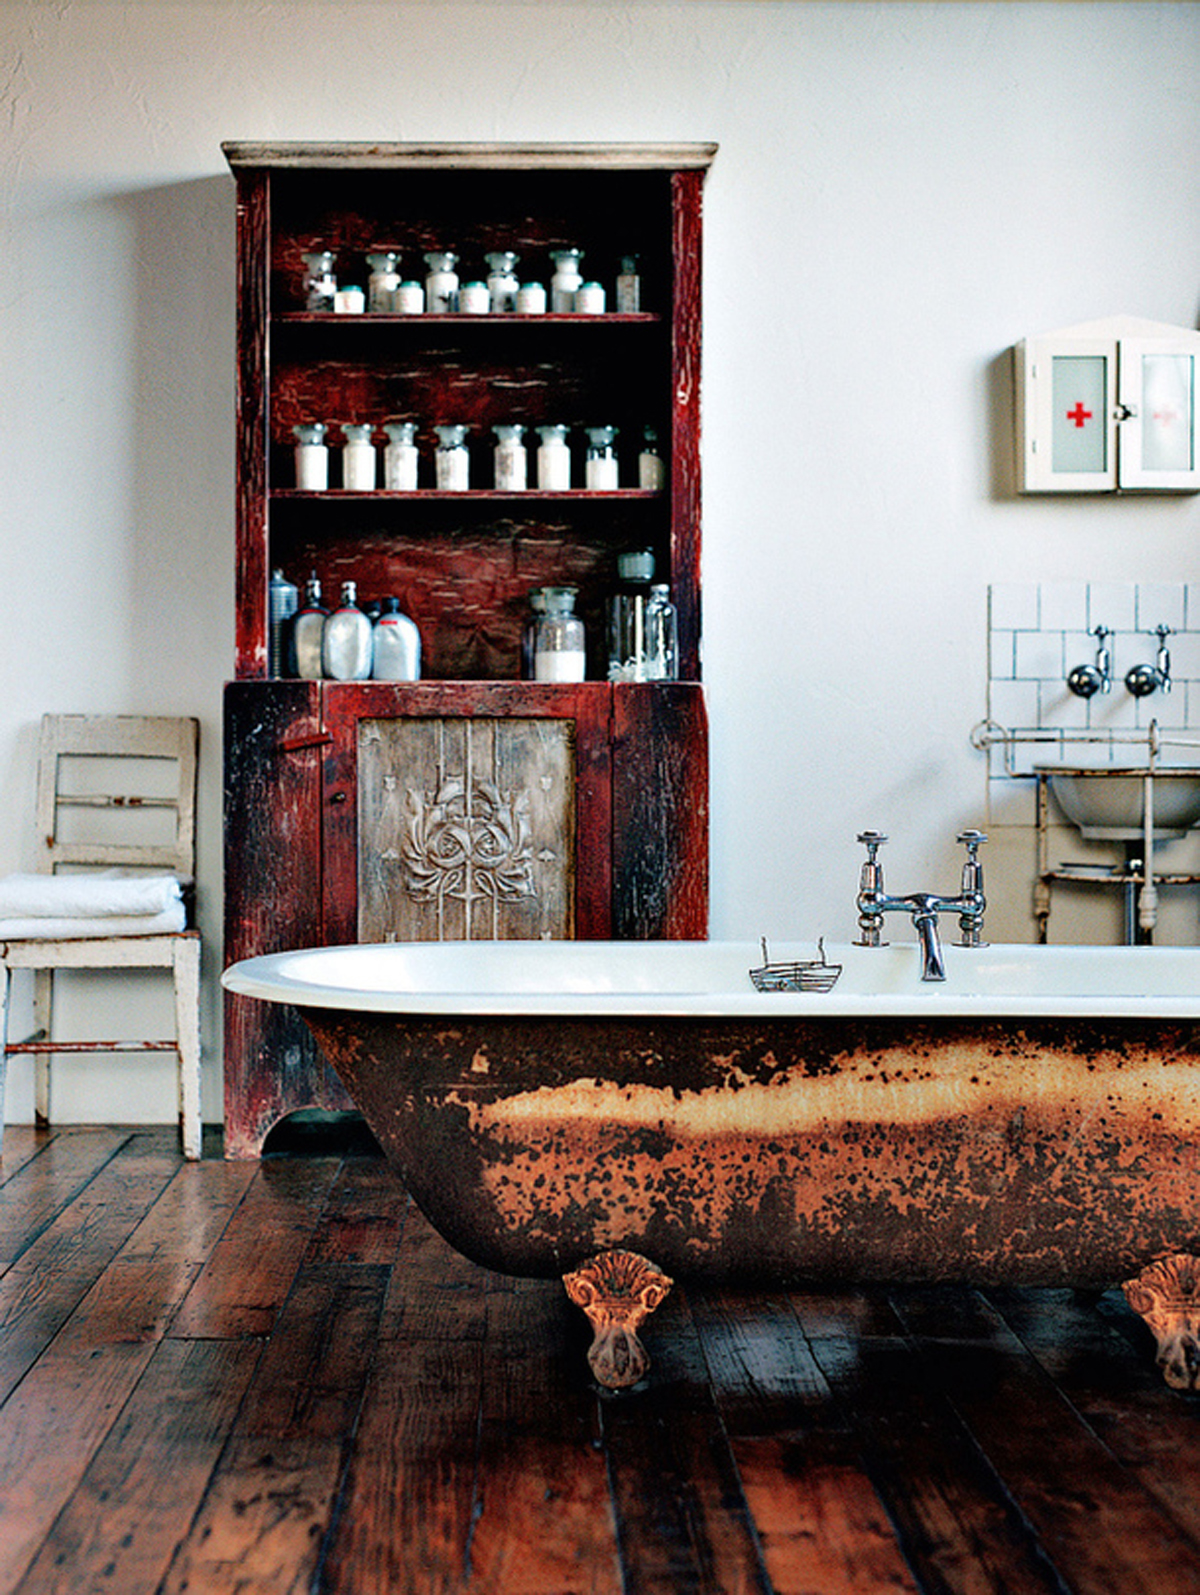 Antique bathroom ideas for Vintage bathroom designs